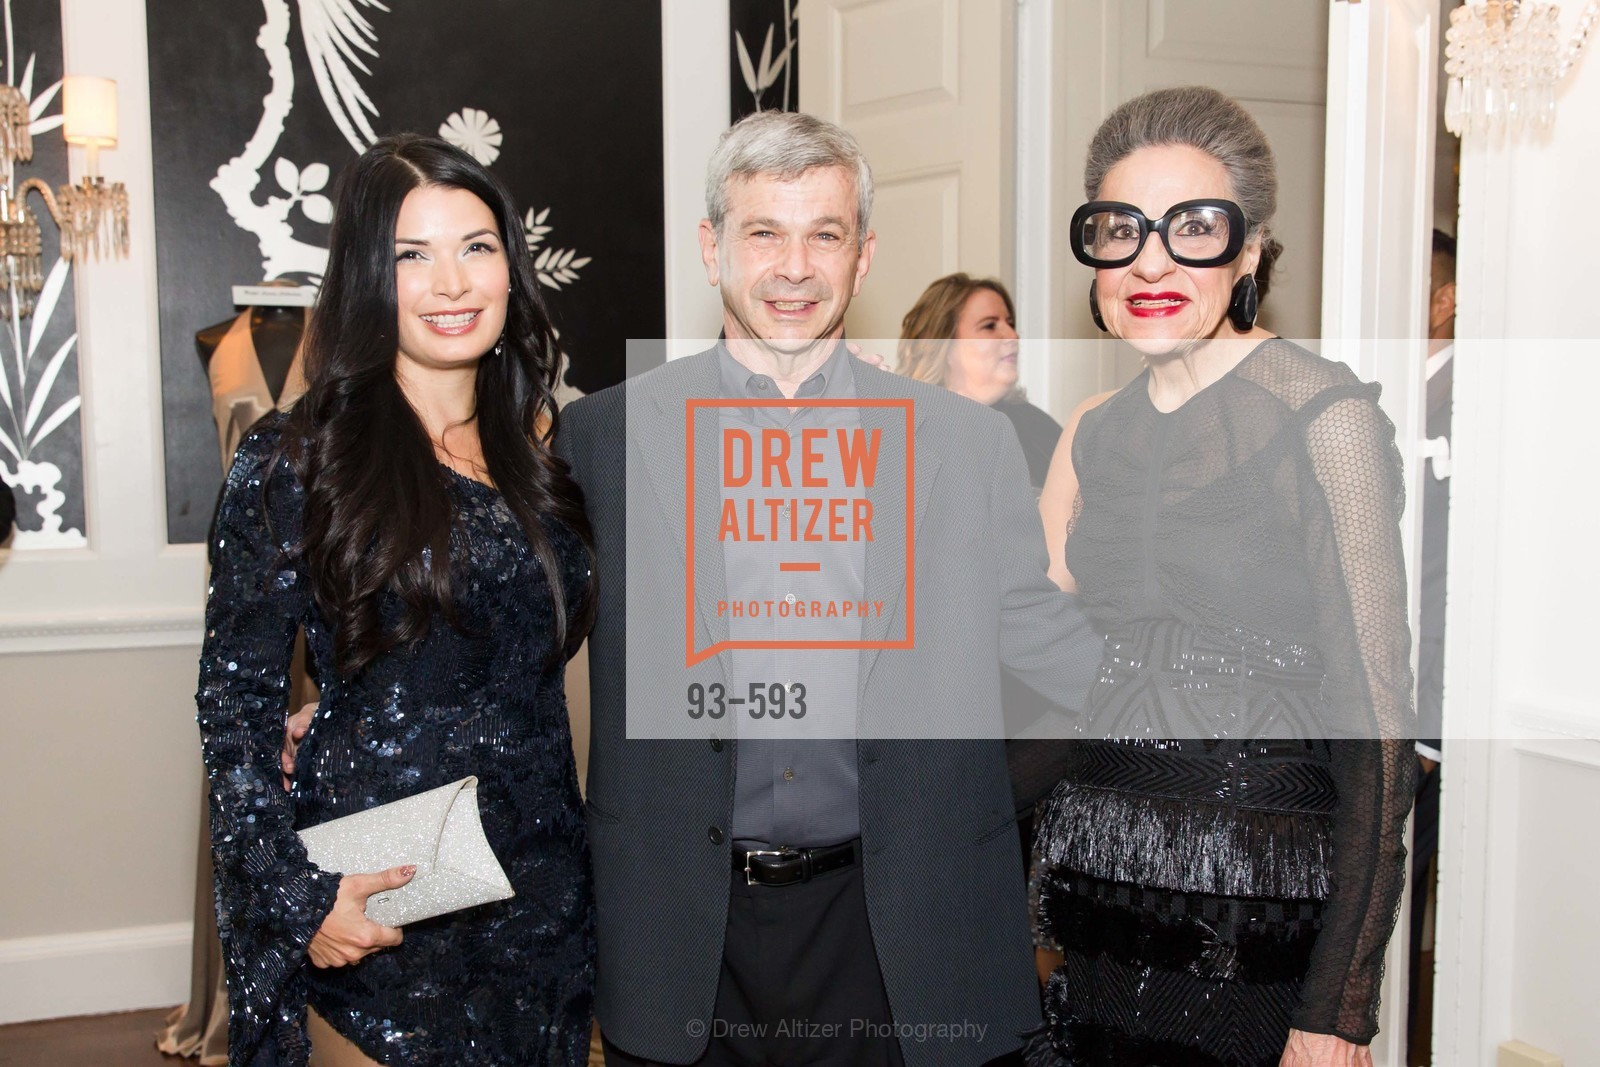 Skye Drynan, Richard Beleson, Joy Venturini Bianchi, COUTURE FOR A CAUSE, US, October 4th, 2014,Drew Altizer, Drew Altizer Photography, full-service agency, private events, San Francisco photographer, photographer california